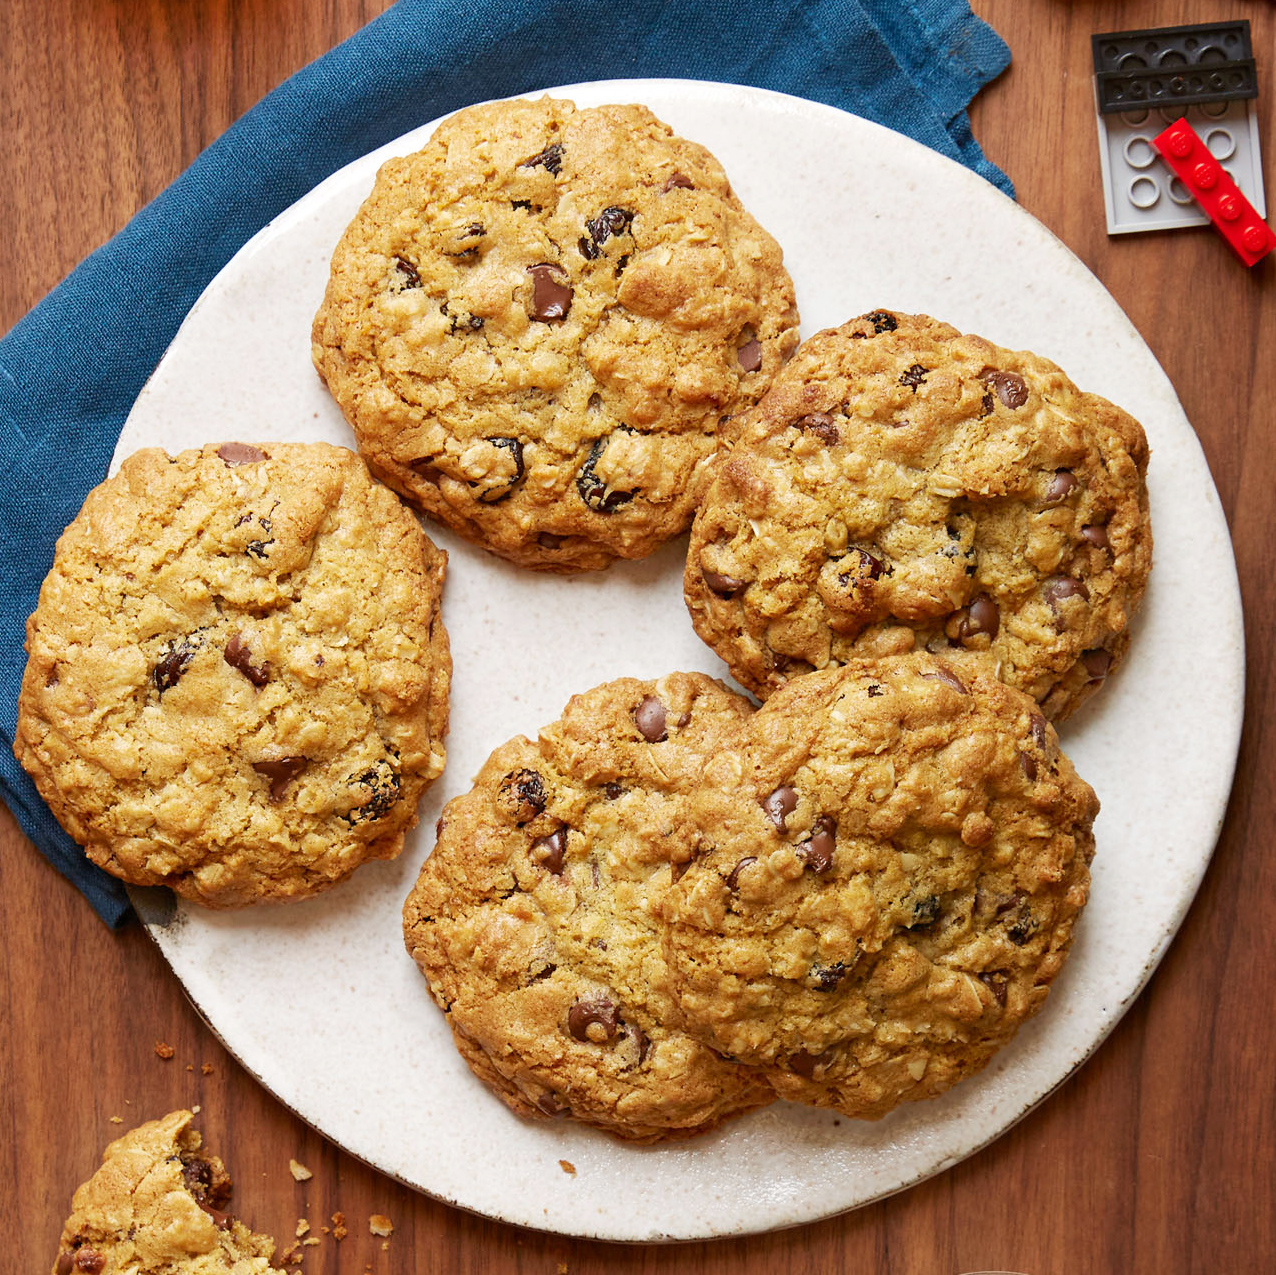 Thick, Chewy Oatmeal Raisin Chocolate Chip Cookies